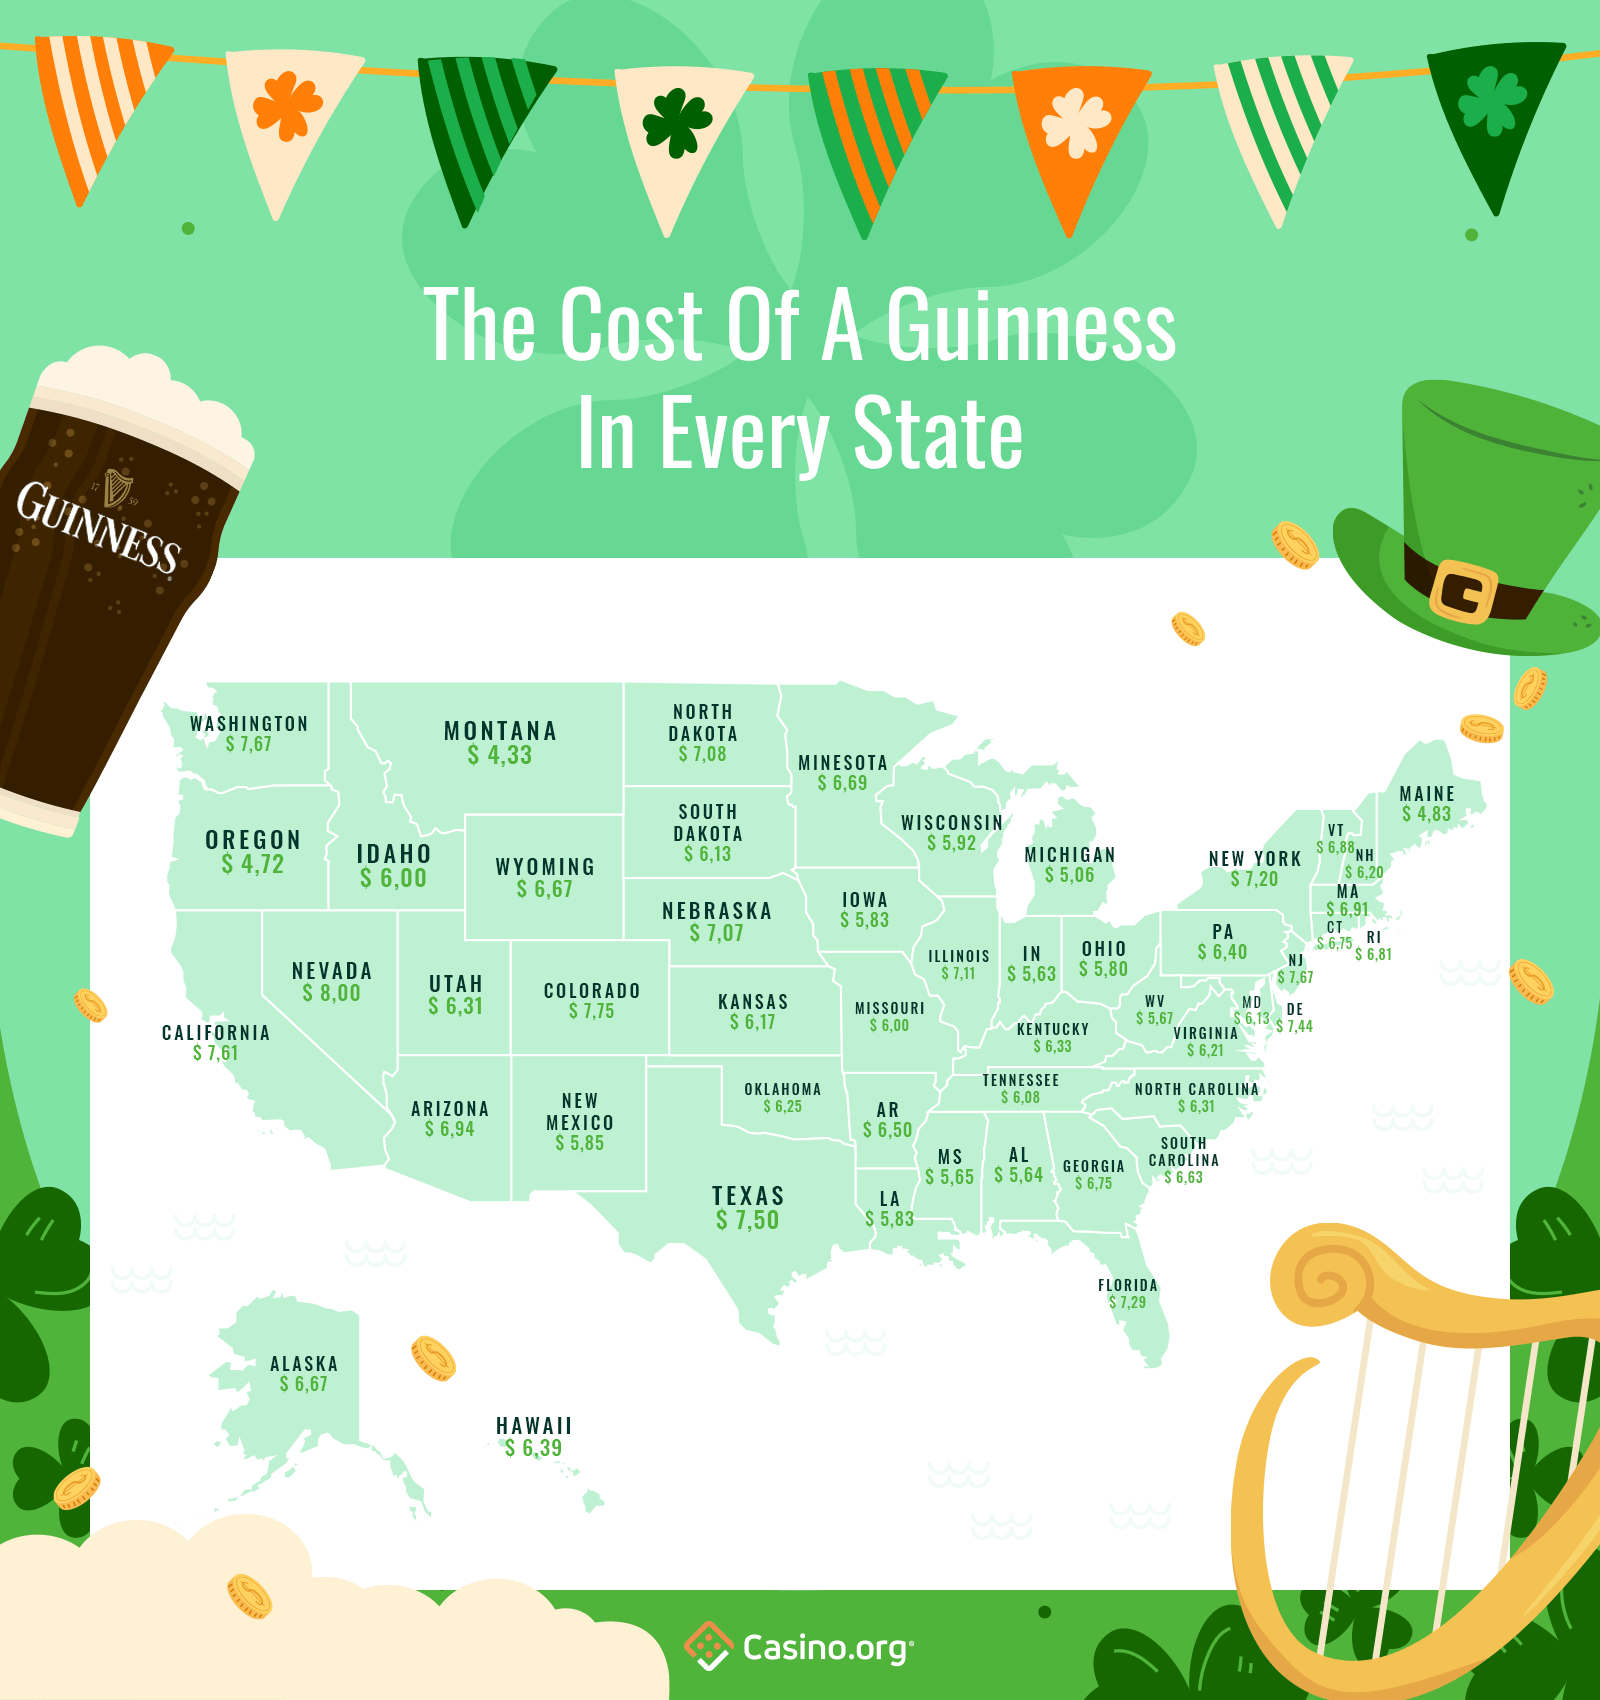 Infographic showing the average cost of a pint of guinness in every state